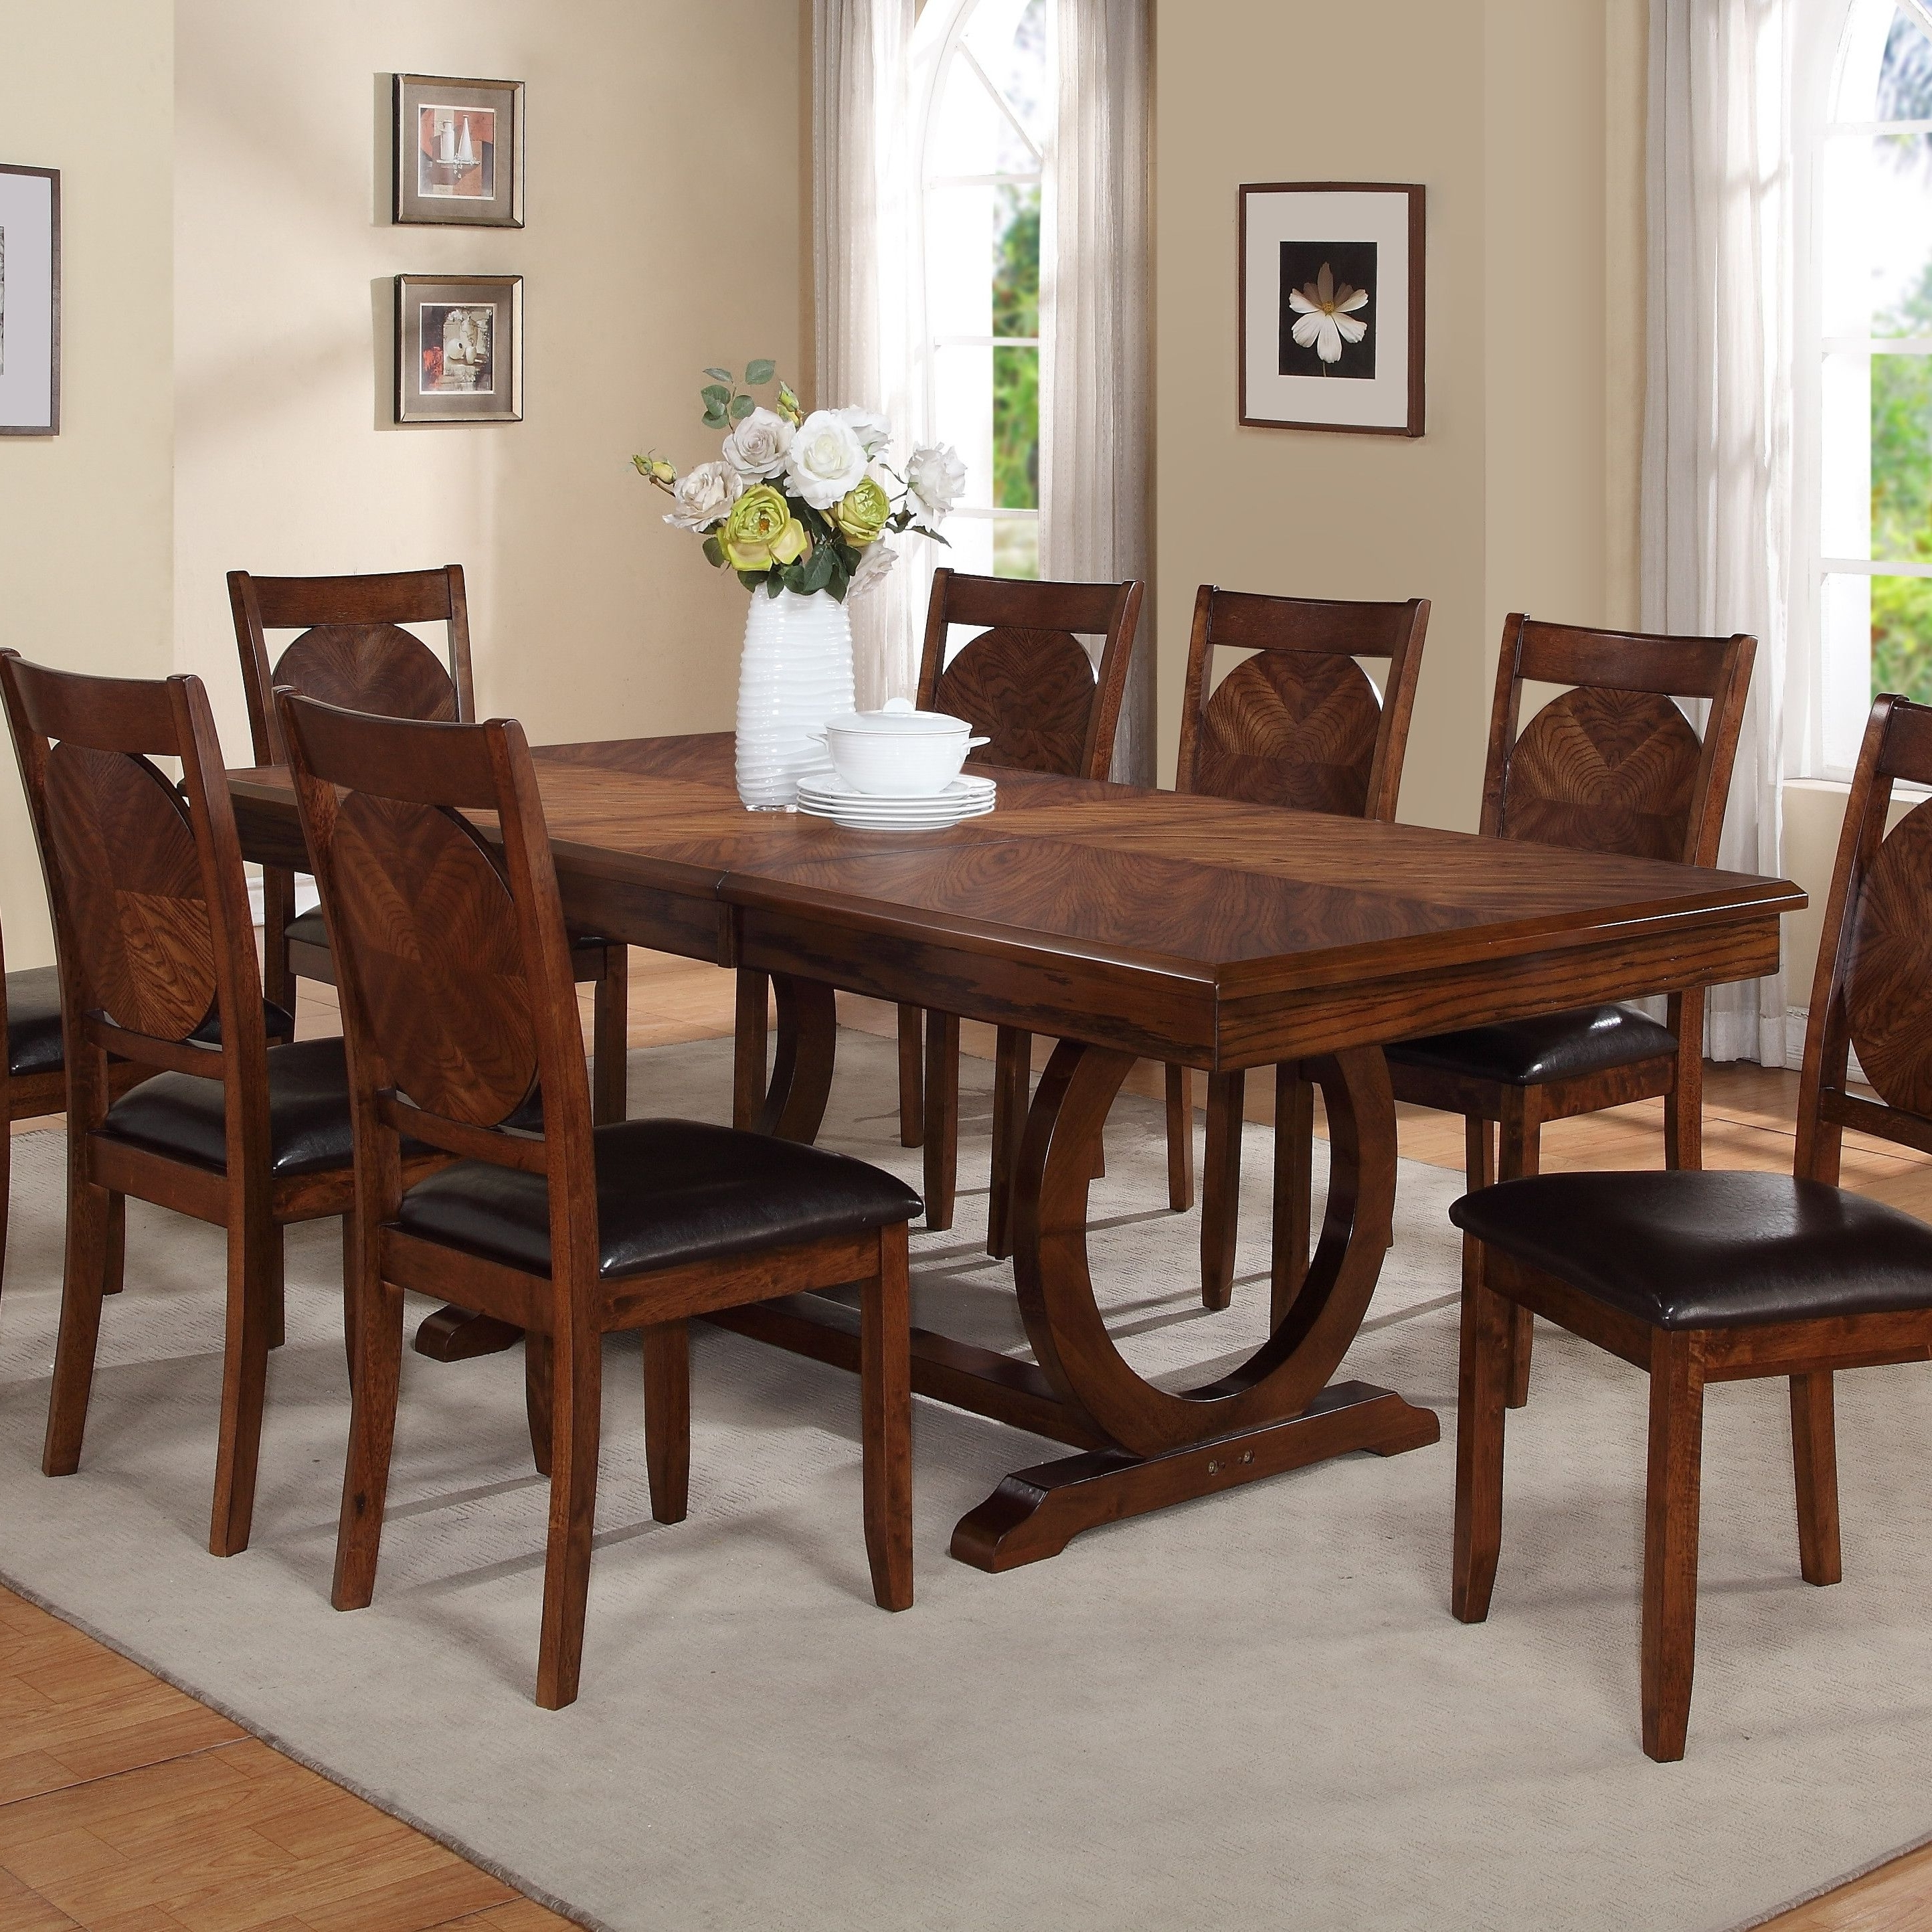 Trendy Extendable Dining Tables With 8 Seats With Kapoor Extendable Dining Table (View 20 of 25)